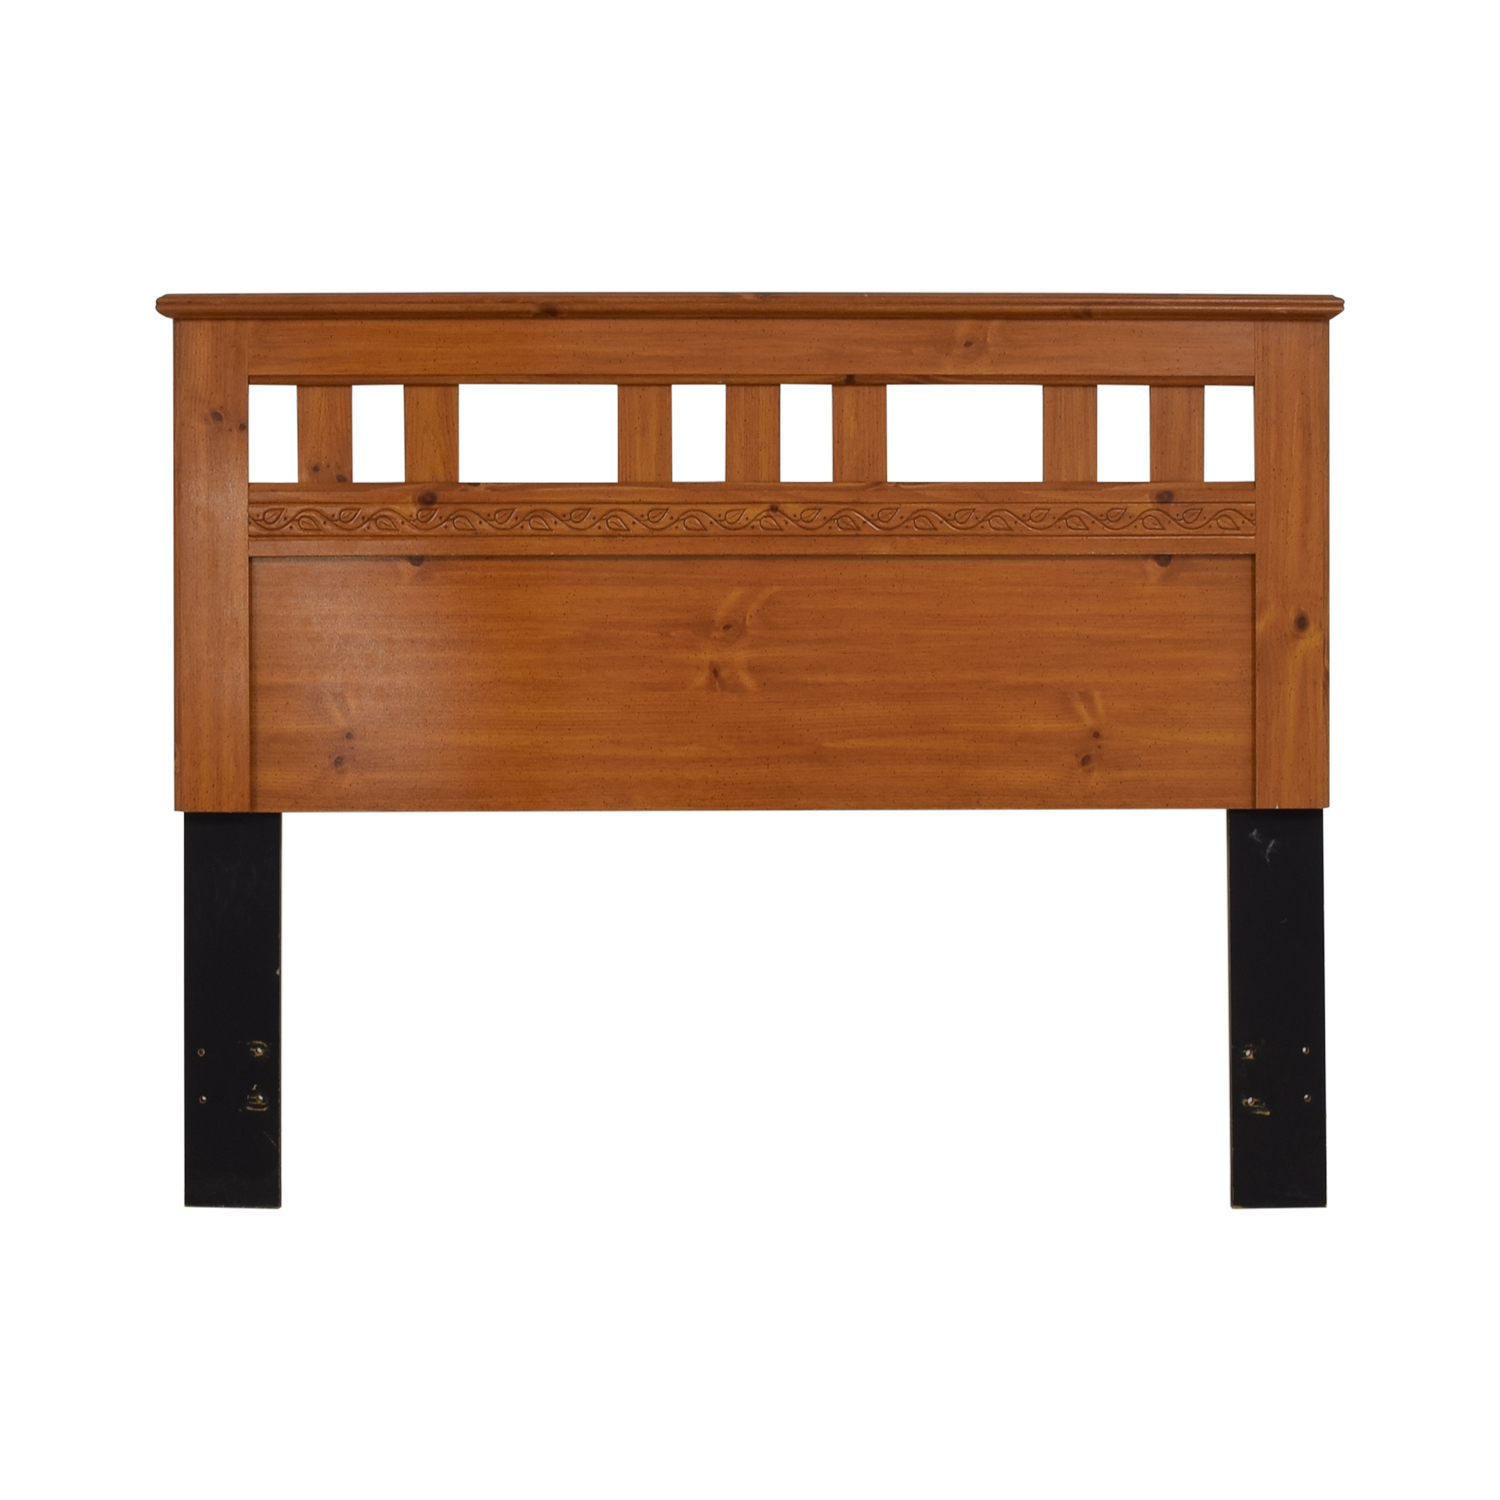 Standard Furniture Spice Pine Wood Full Headboard Standard Furniture